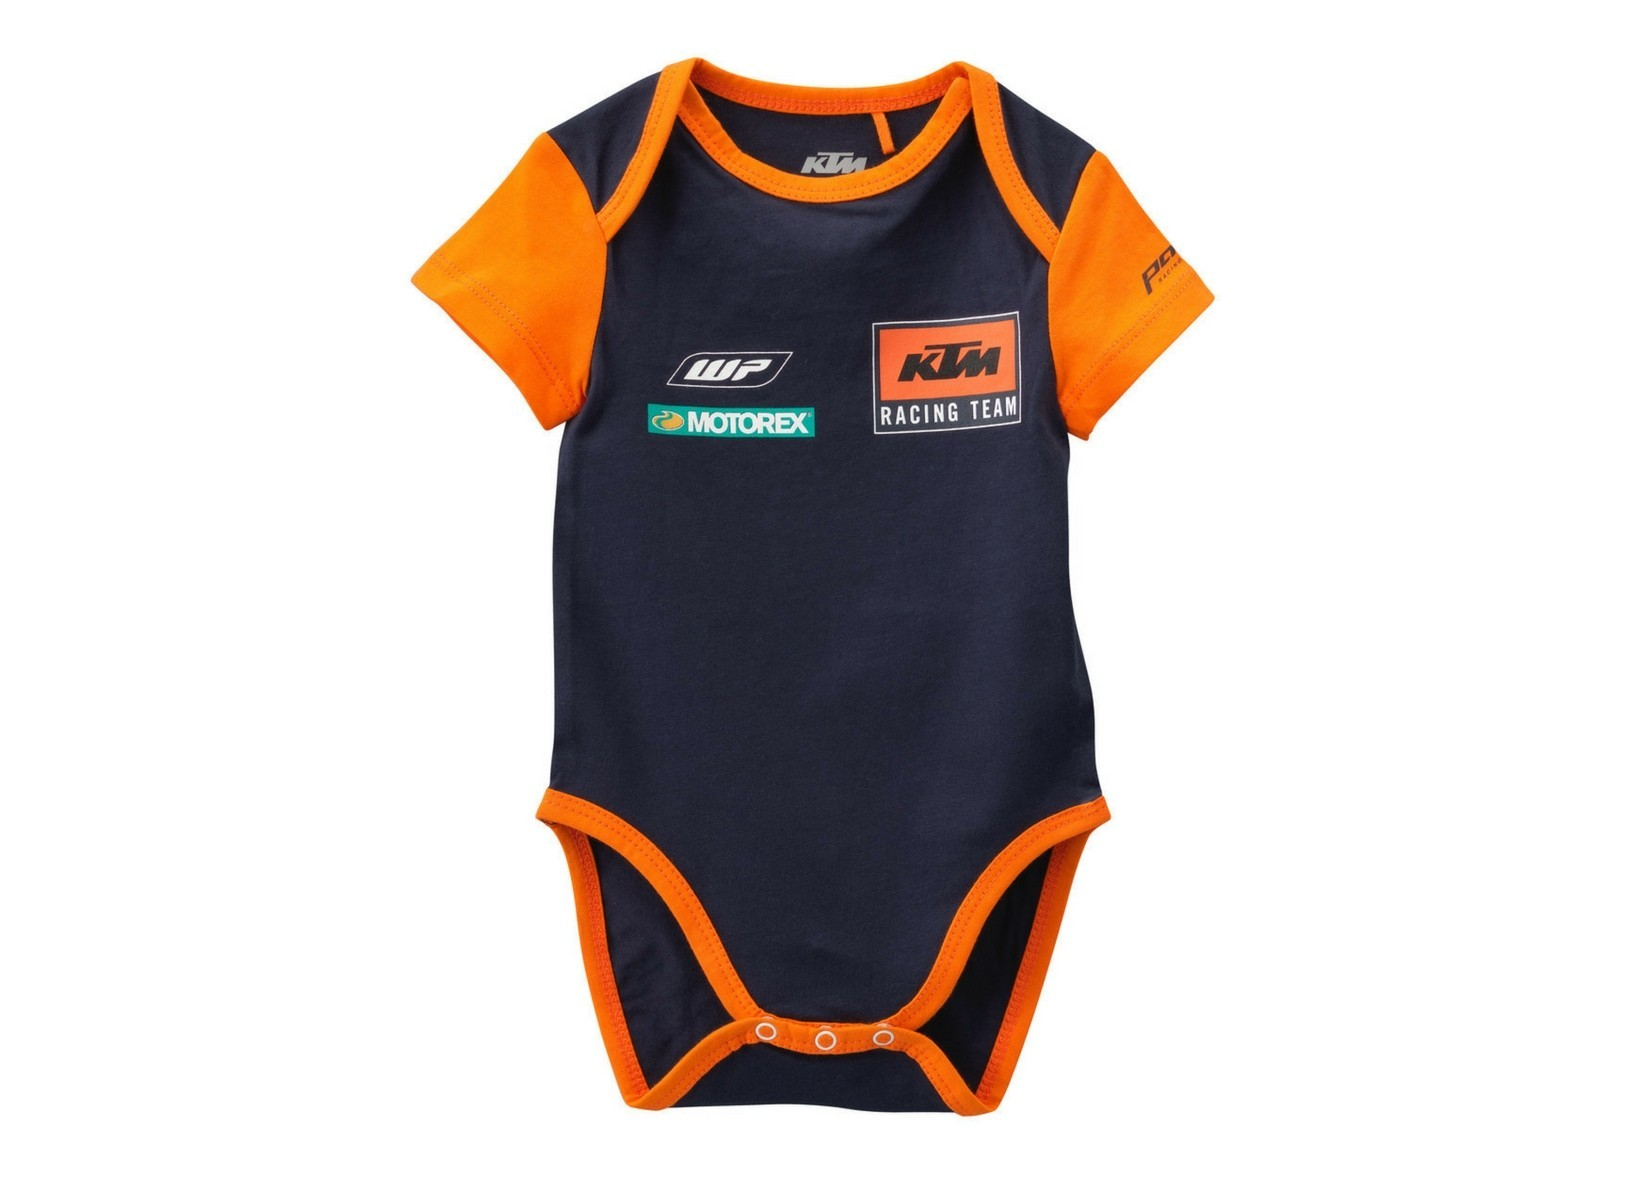 Ktm Baby Clothes Cutest Baby Clothing And Accessories Ideas By Ct